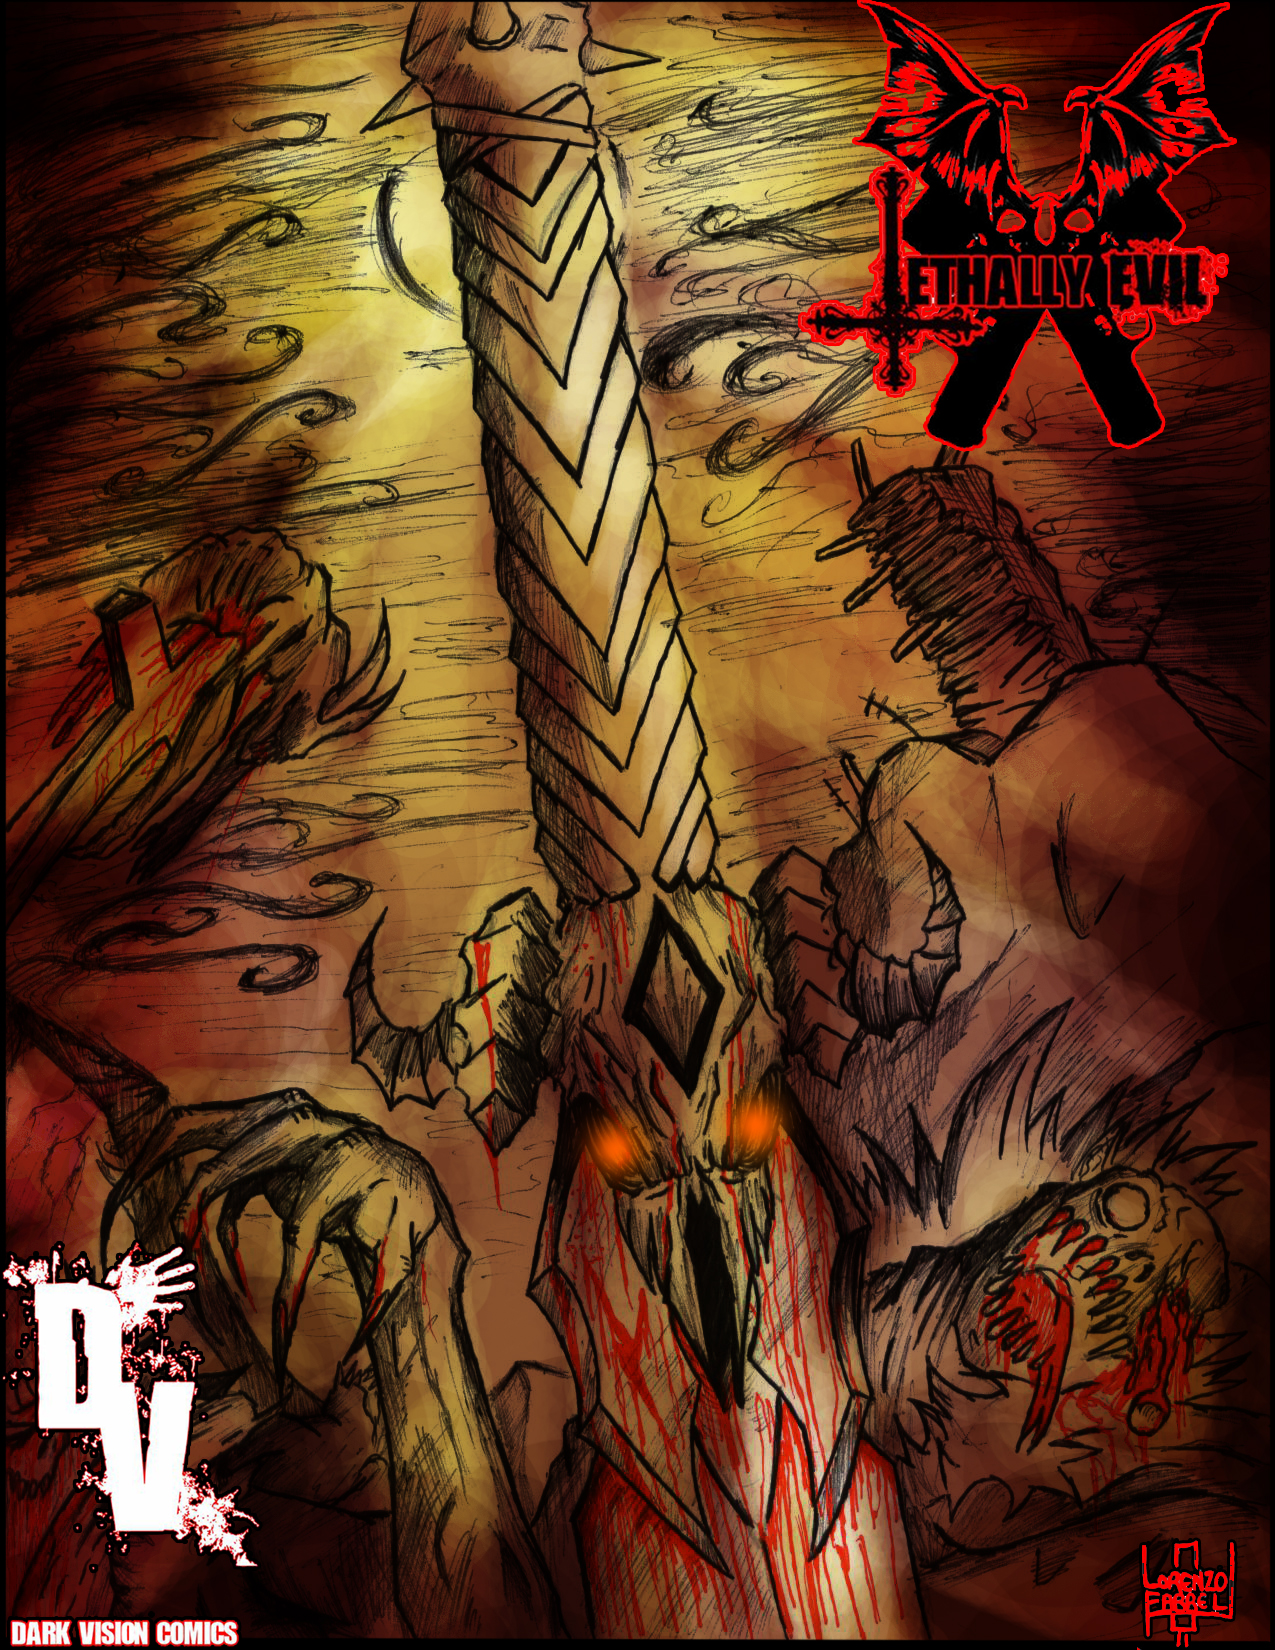 Lethally Evil Issue2 cover